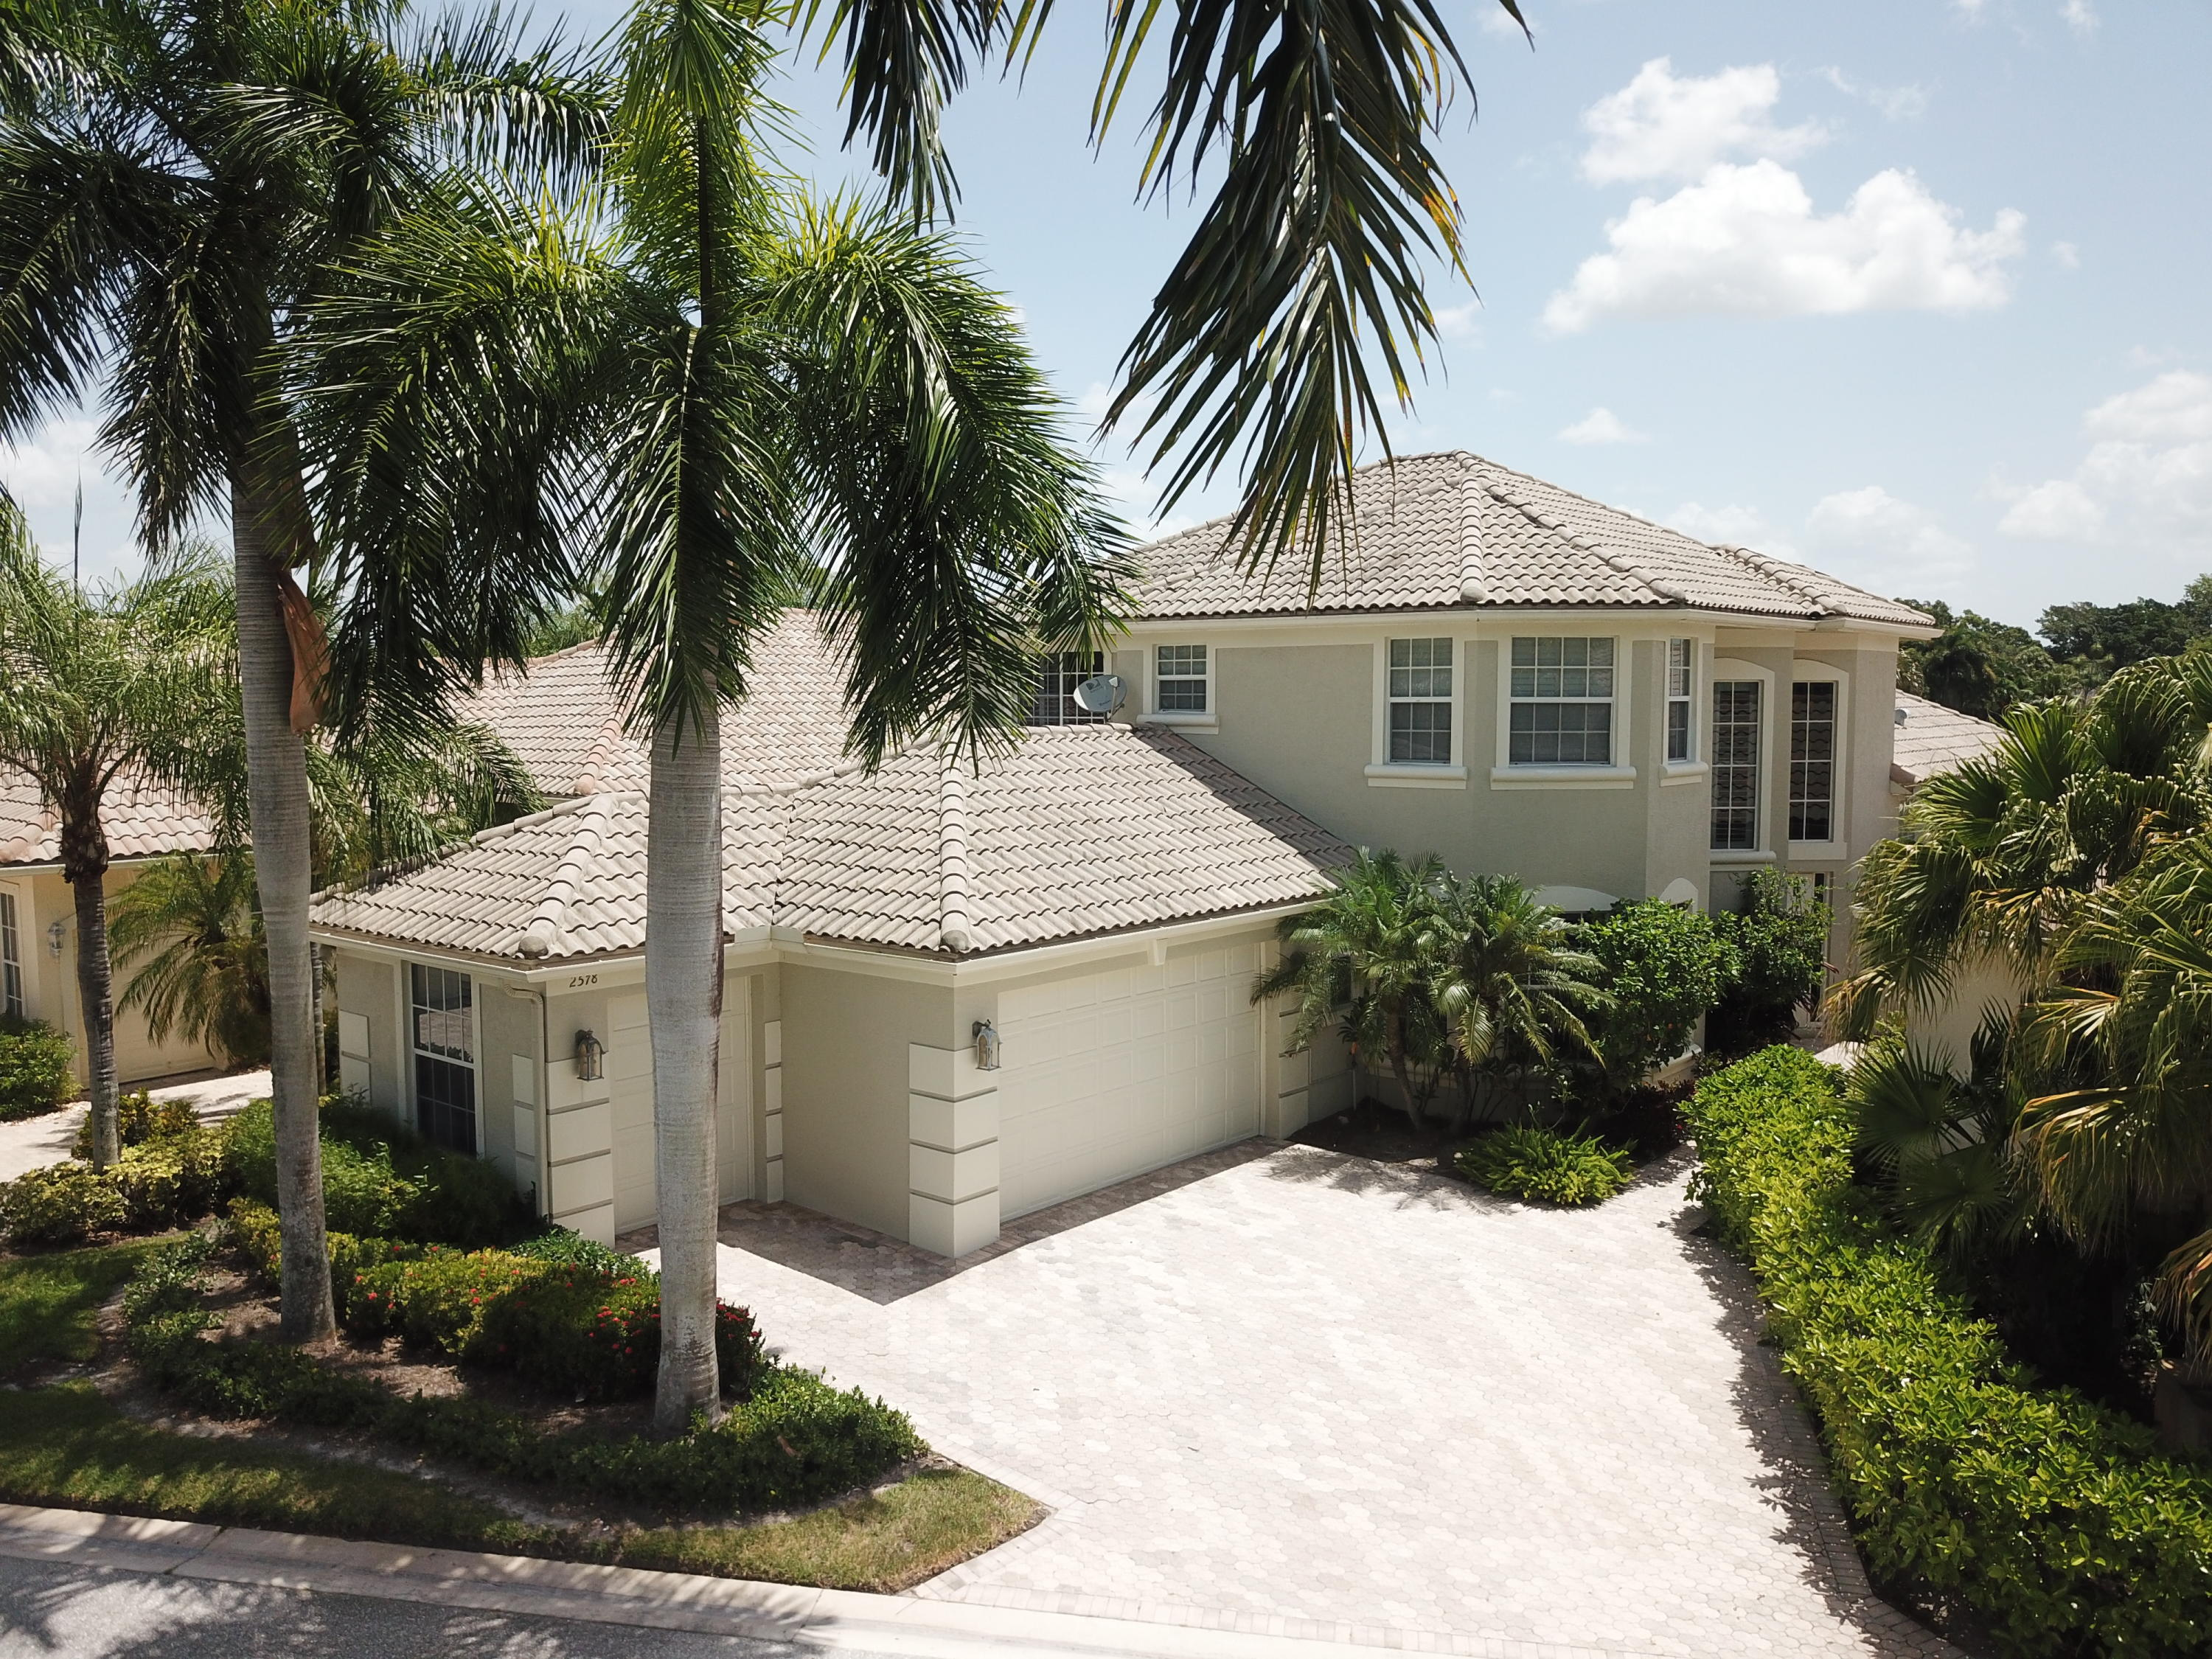 Home for sale in Palm Beach Polo & Country Club Wellington Florida